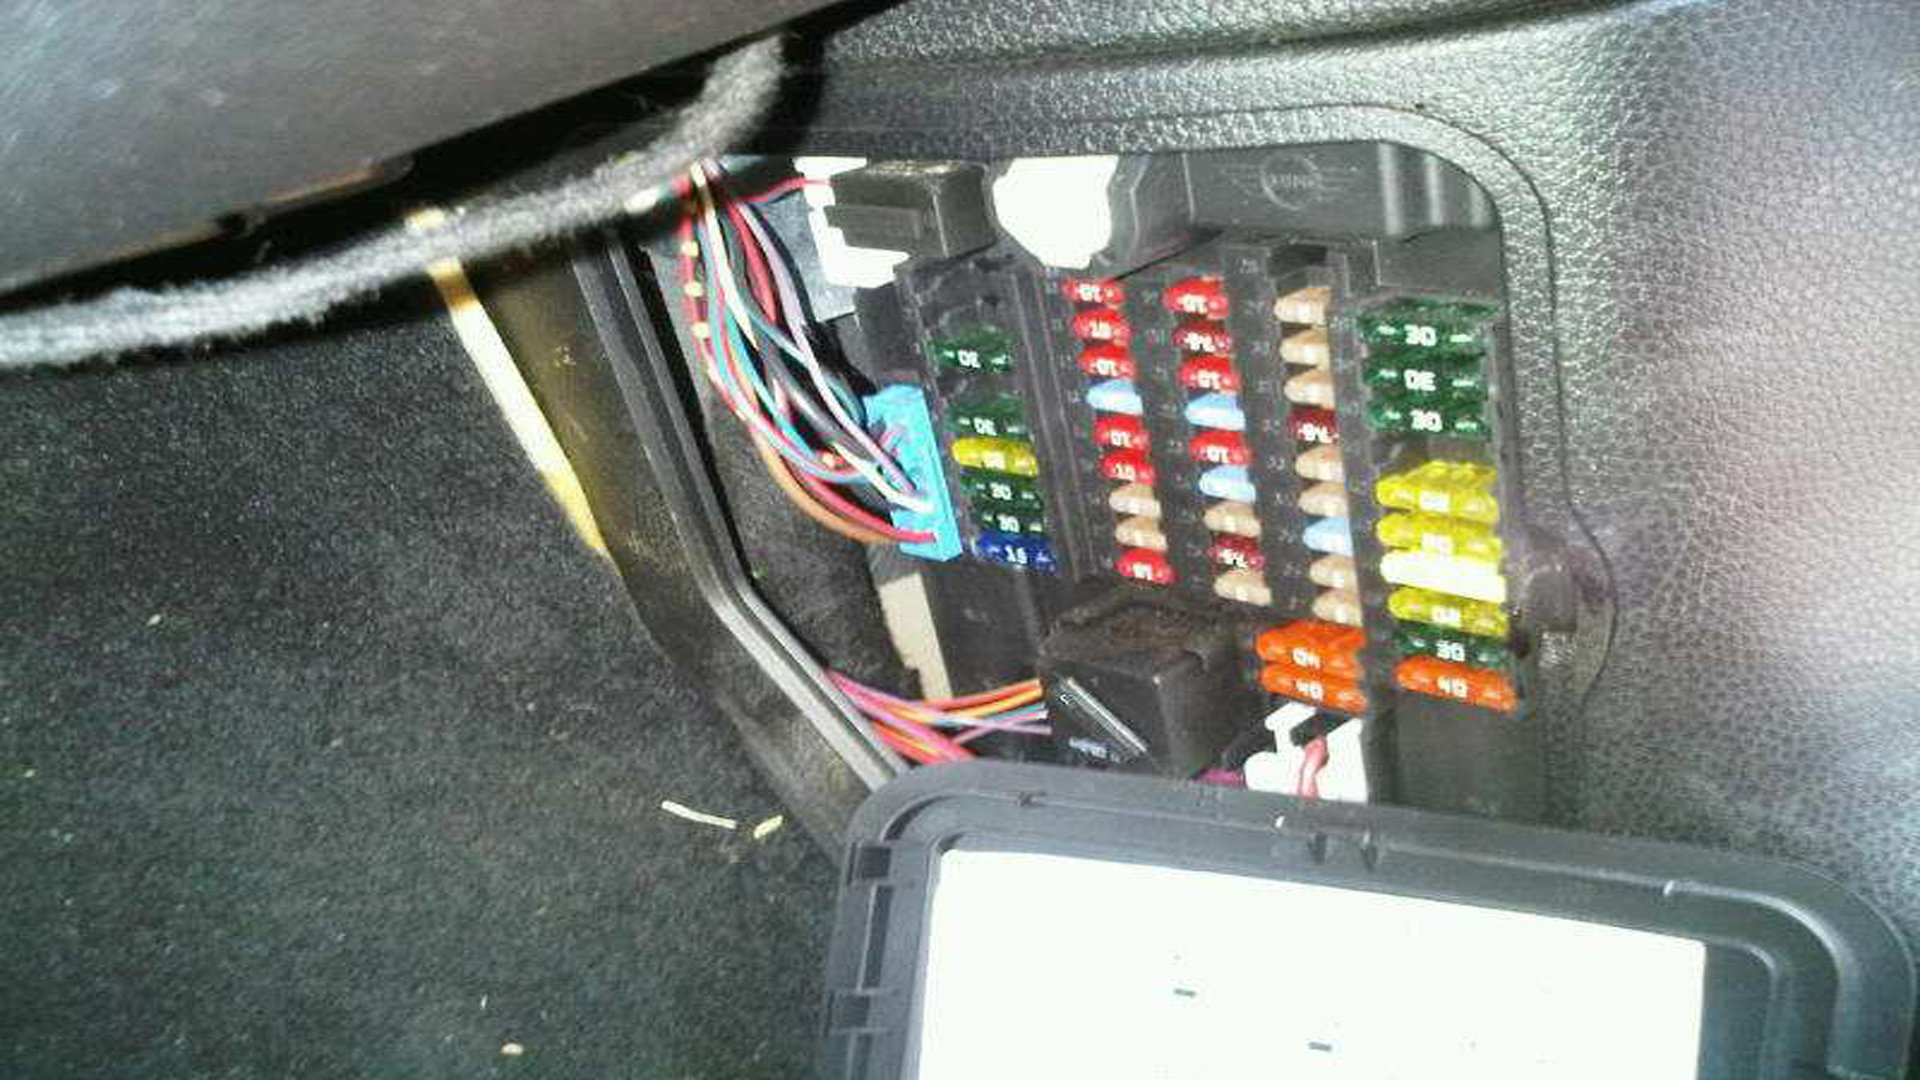 Mini Cooper 2007-Present: Fuse Box Diagram | NorthamericanmotoringNorth American Motoring